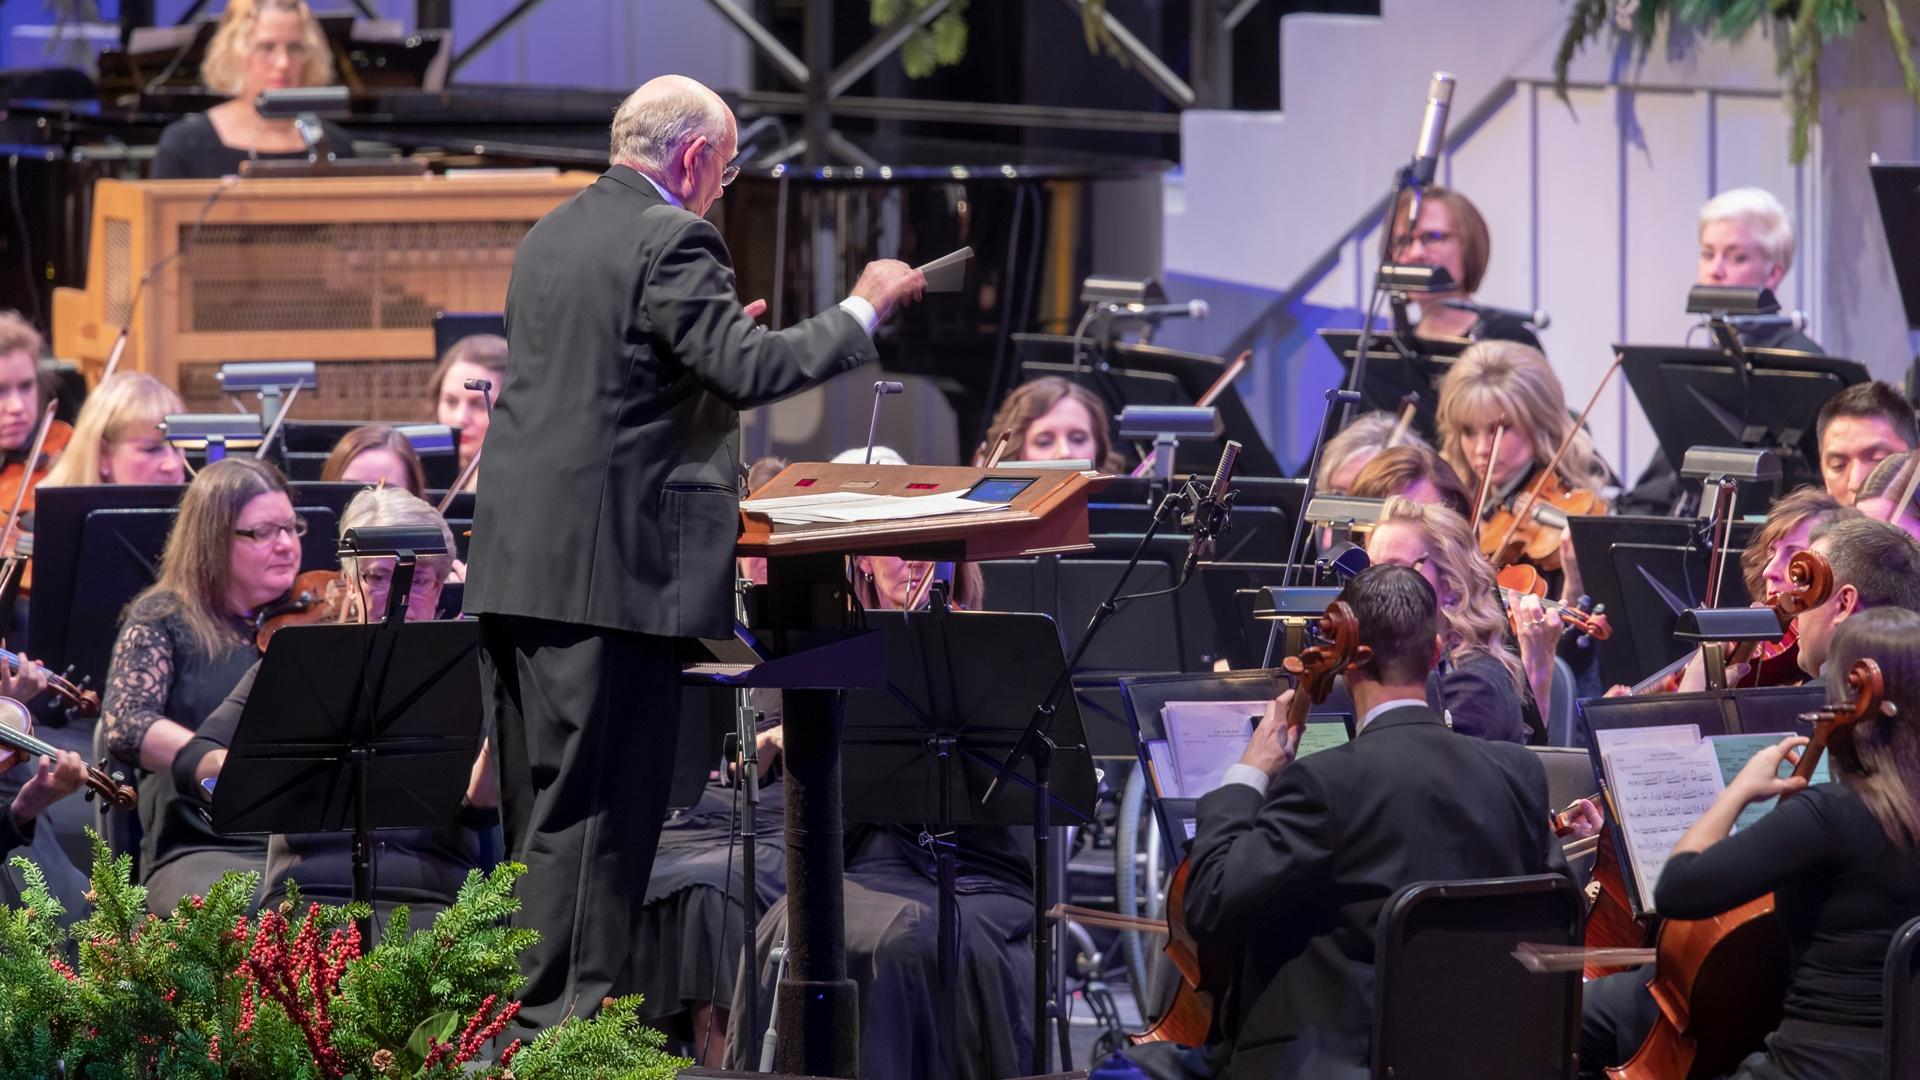 Dr. Mack Wilberg conductions The Orchestra at Temple Square